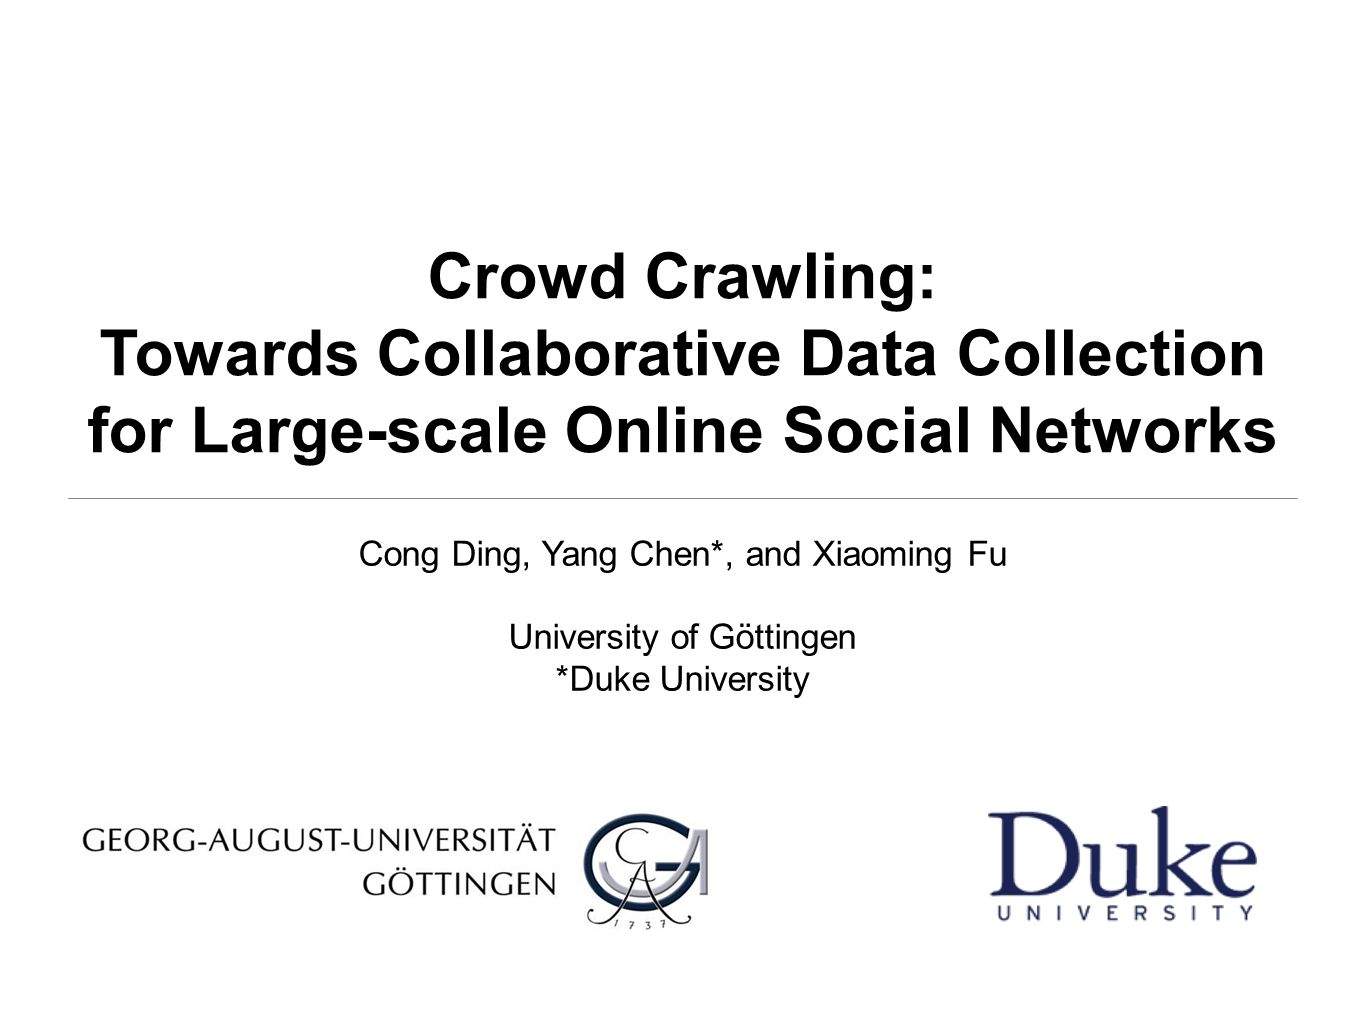 Crowd Crawling: Towards Collaborative Data Collection for Large-scale Online Social Networks